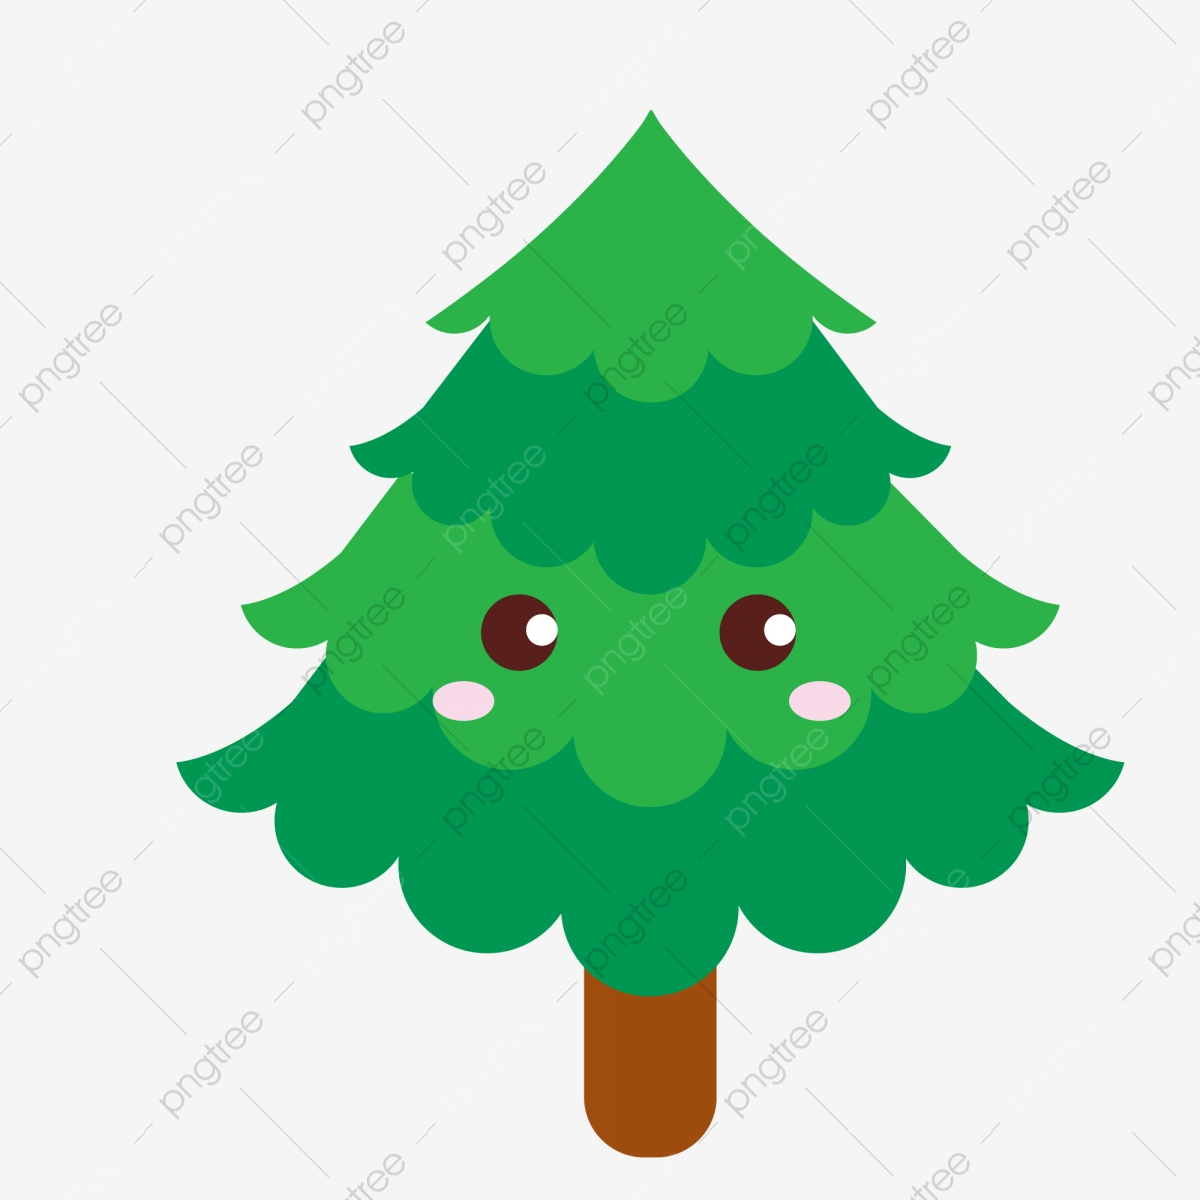 cartoon cute christmas tree green plant christmas tree clipart cartoon lovely png and vector with transparent background for free download https pngtree com freepng cartoon cute christmas tree green plant 4041141 html